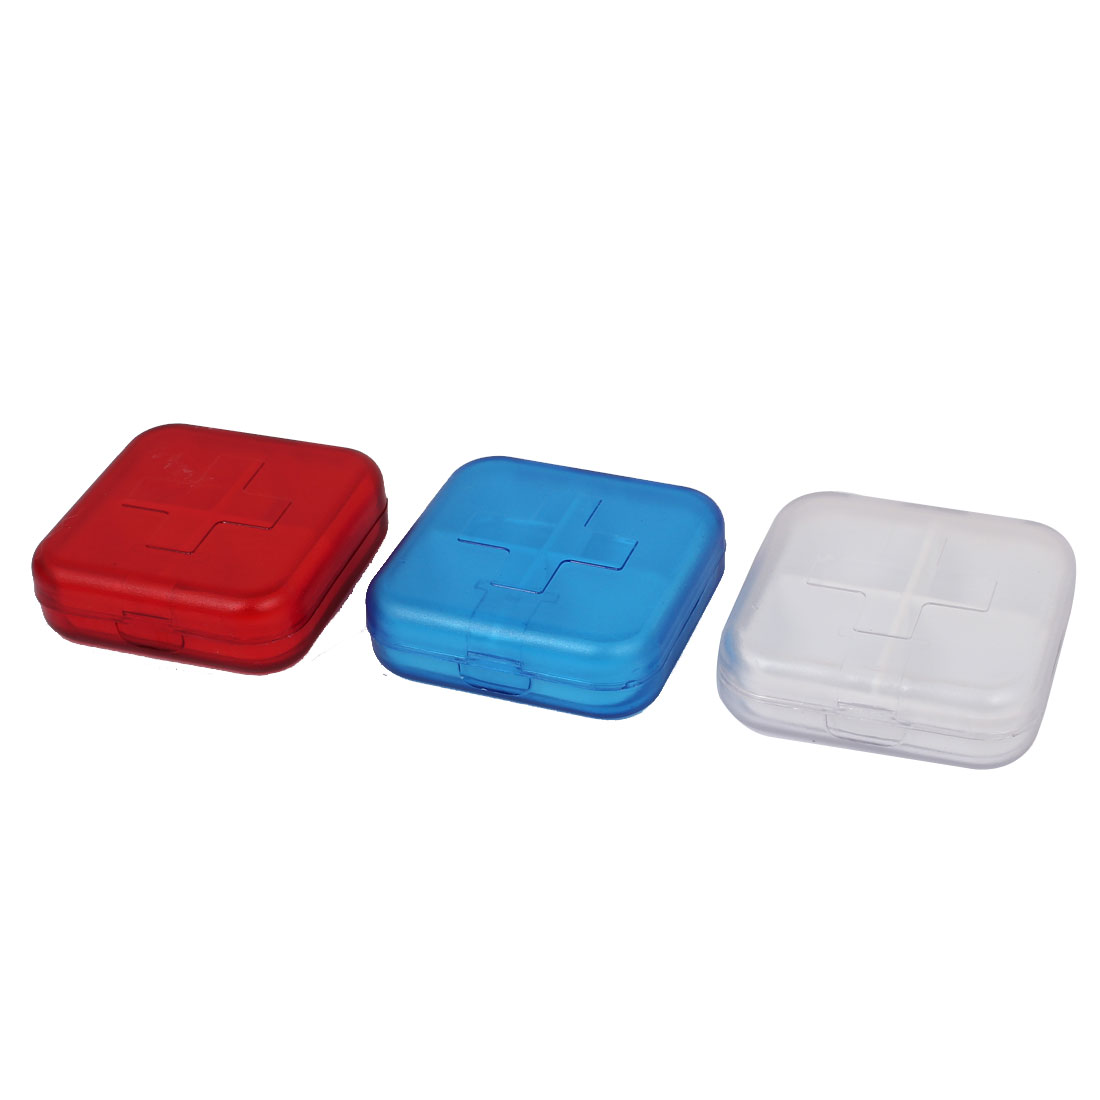 Plastic Rectangle Shaped 4 Compartments Drug Pill Organizer Box Case 3PCS